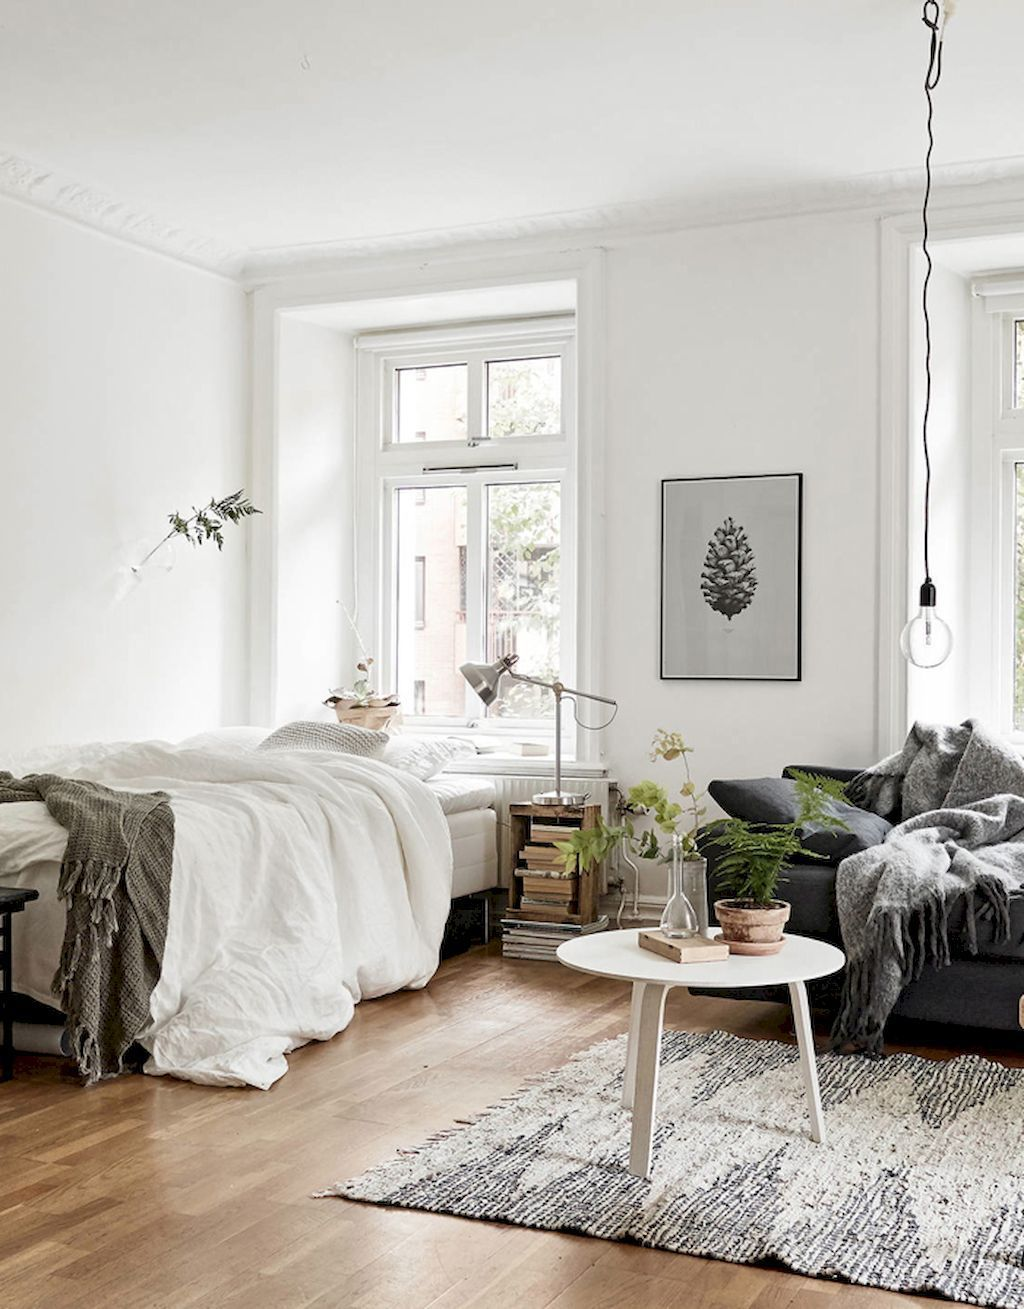 Bedroom Studio Ideas 60 Cool Studio Apartment With Scandinavian Style Ideas On